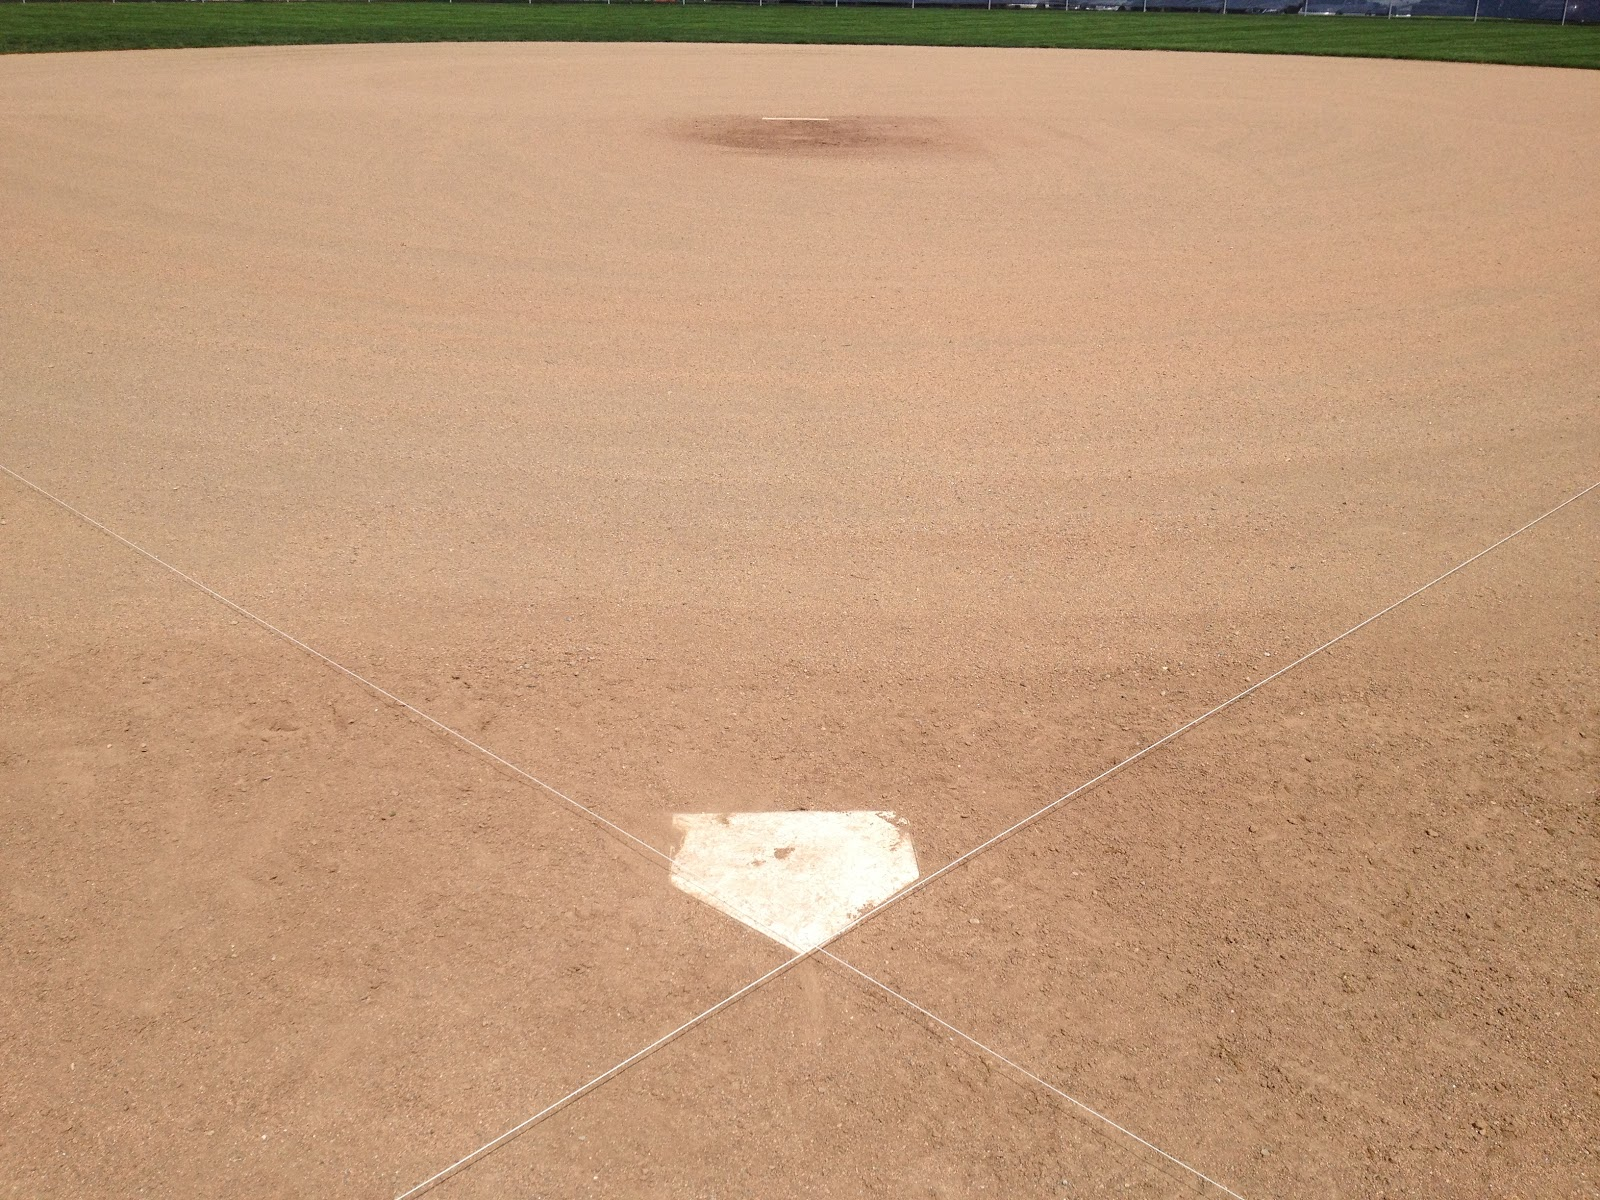 smart turf replacing a homeplate without a surveyor